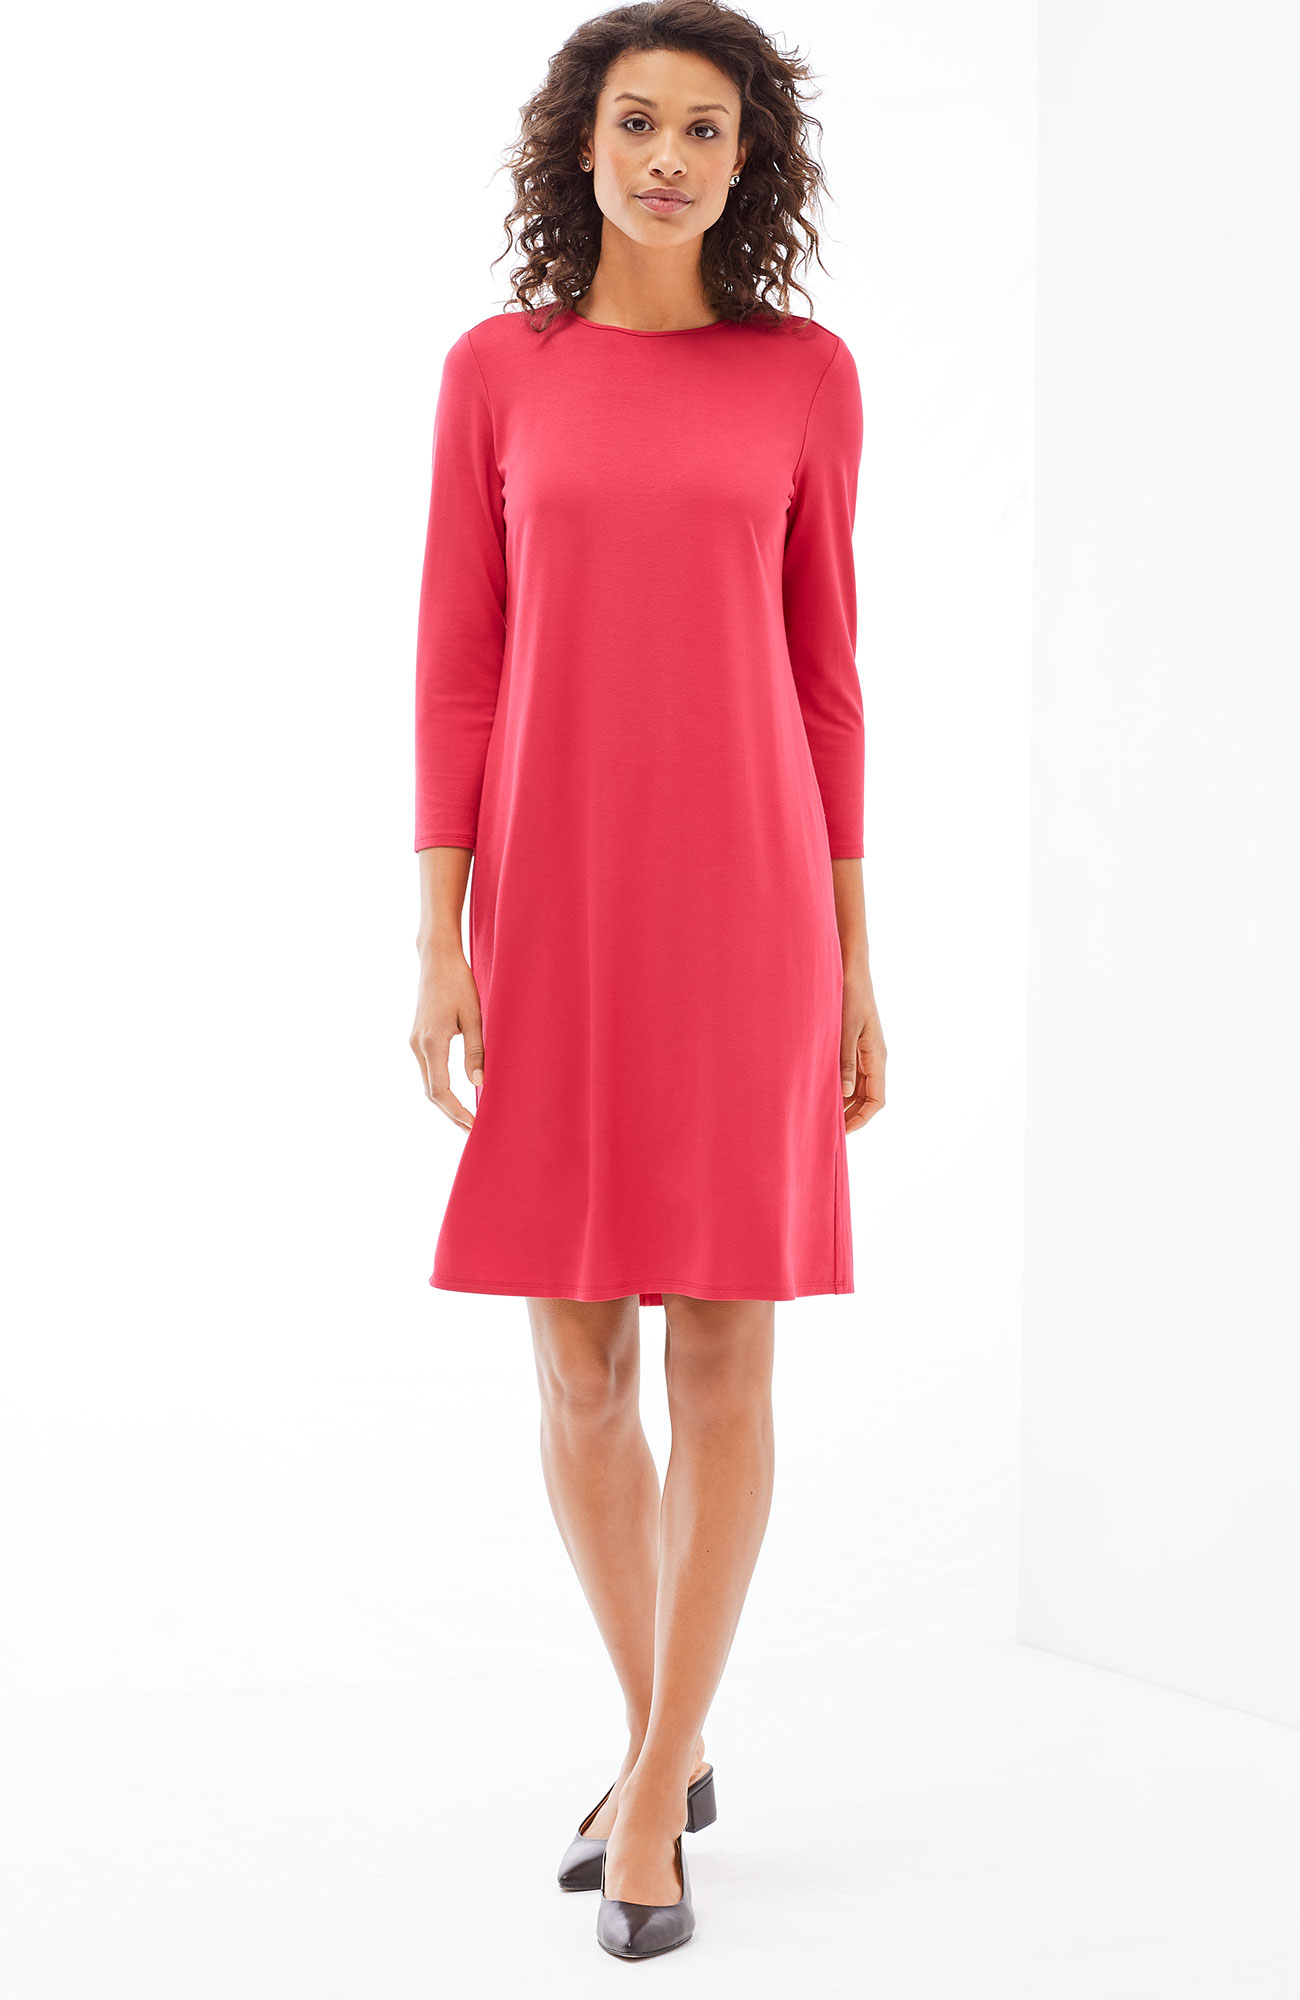 Wearever 3/4-sleeve pleated-back A-line dress